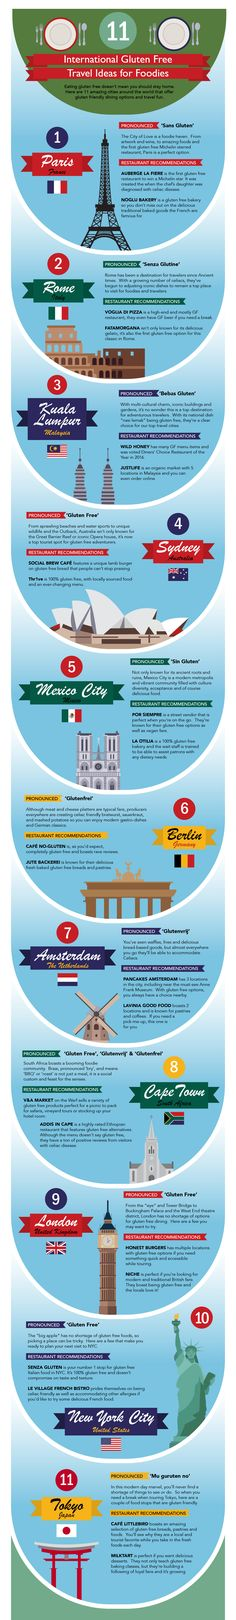 This is an awesome infographic with travel ideas that have awesome food options for gluten free diets. It teaches the pronounciation as well as lists a few must try restaurants. Sin Gluten, Gluten Free Diet, Dairy Free, What Is Celiac Disease, Celebrity Diets, Gluten Free Restaurants, Free Tips, New Travel, Travel Light